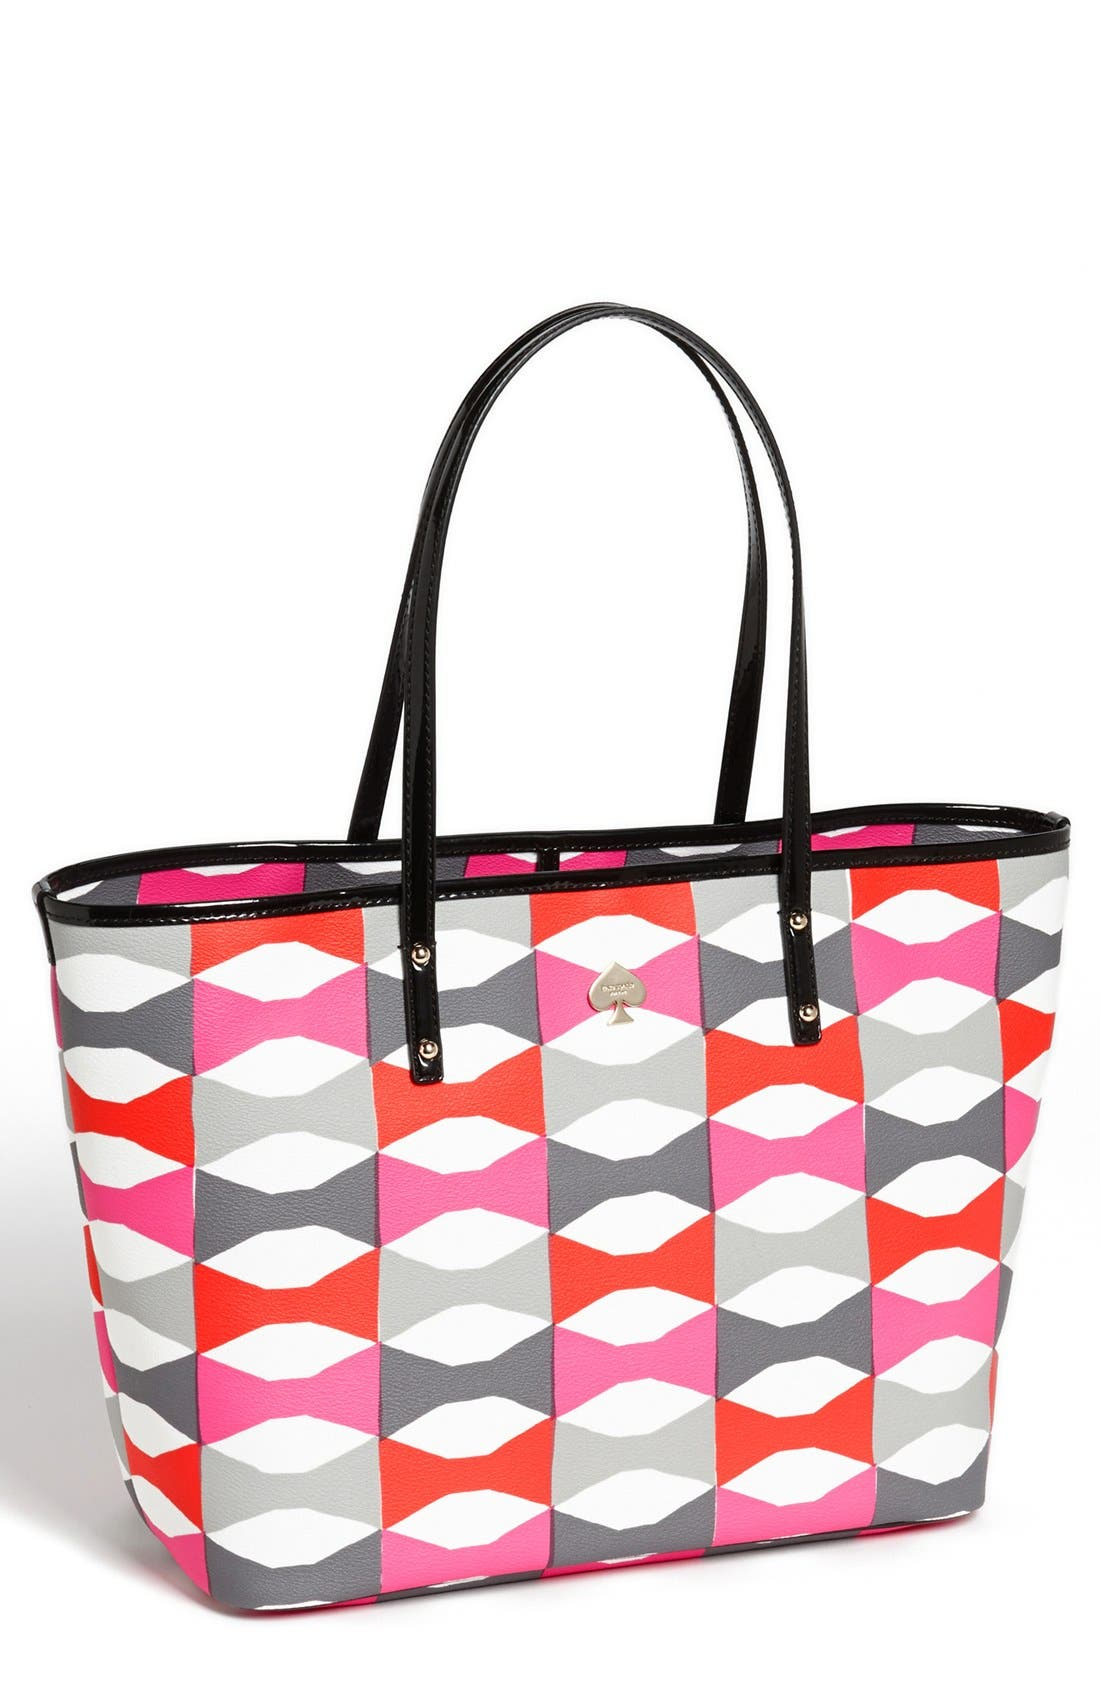 Main Image - kate spade new york 'signature bow harmony - medium' tote